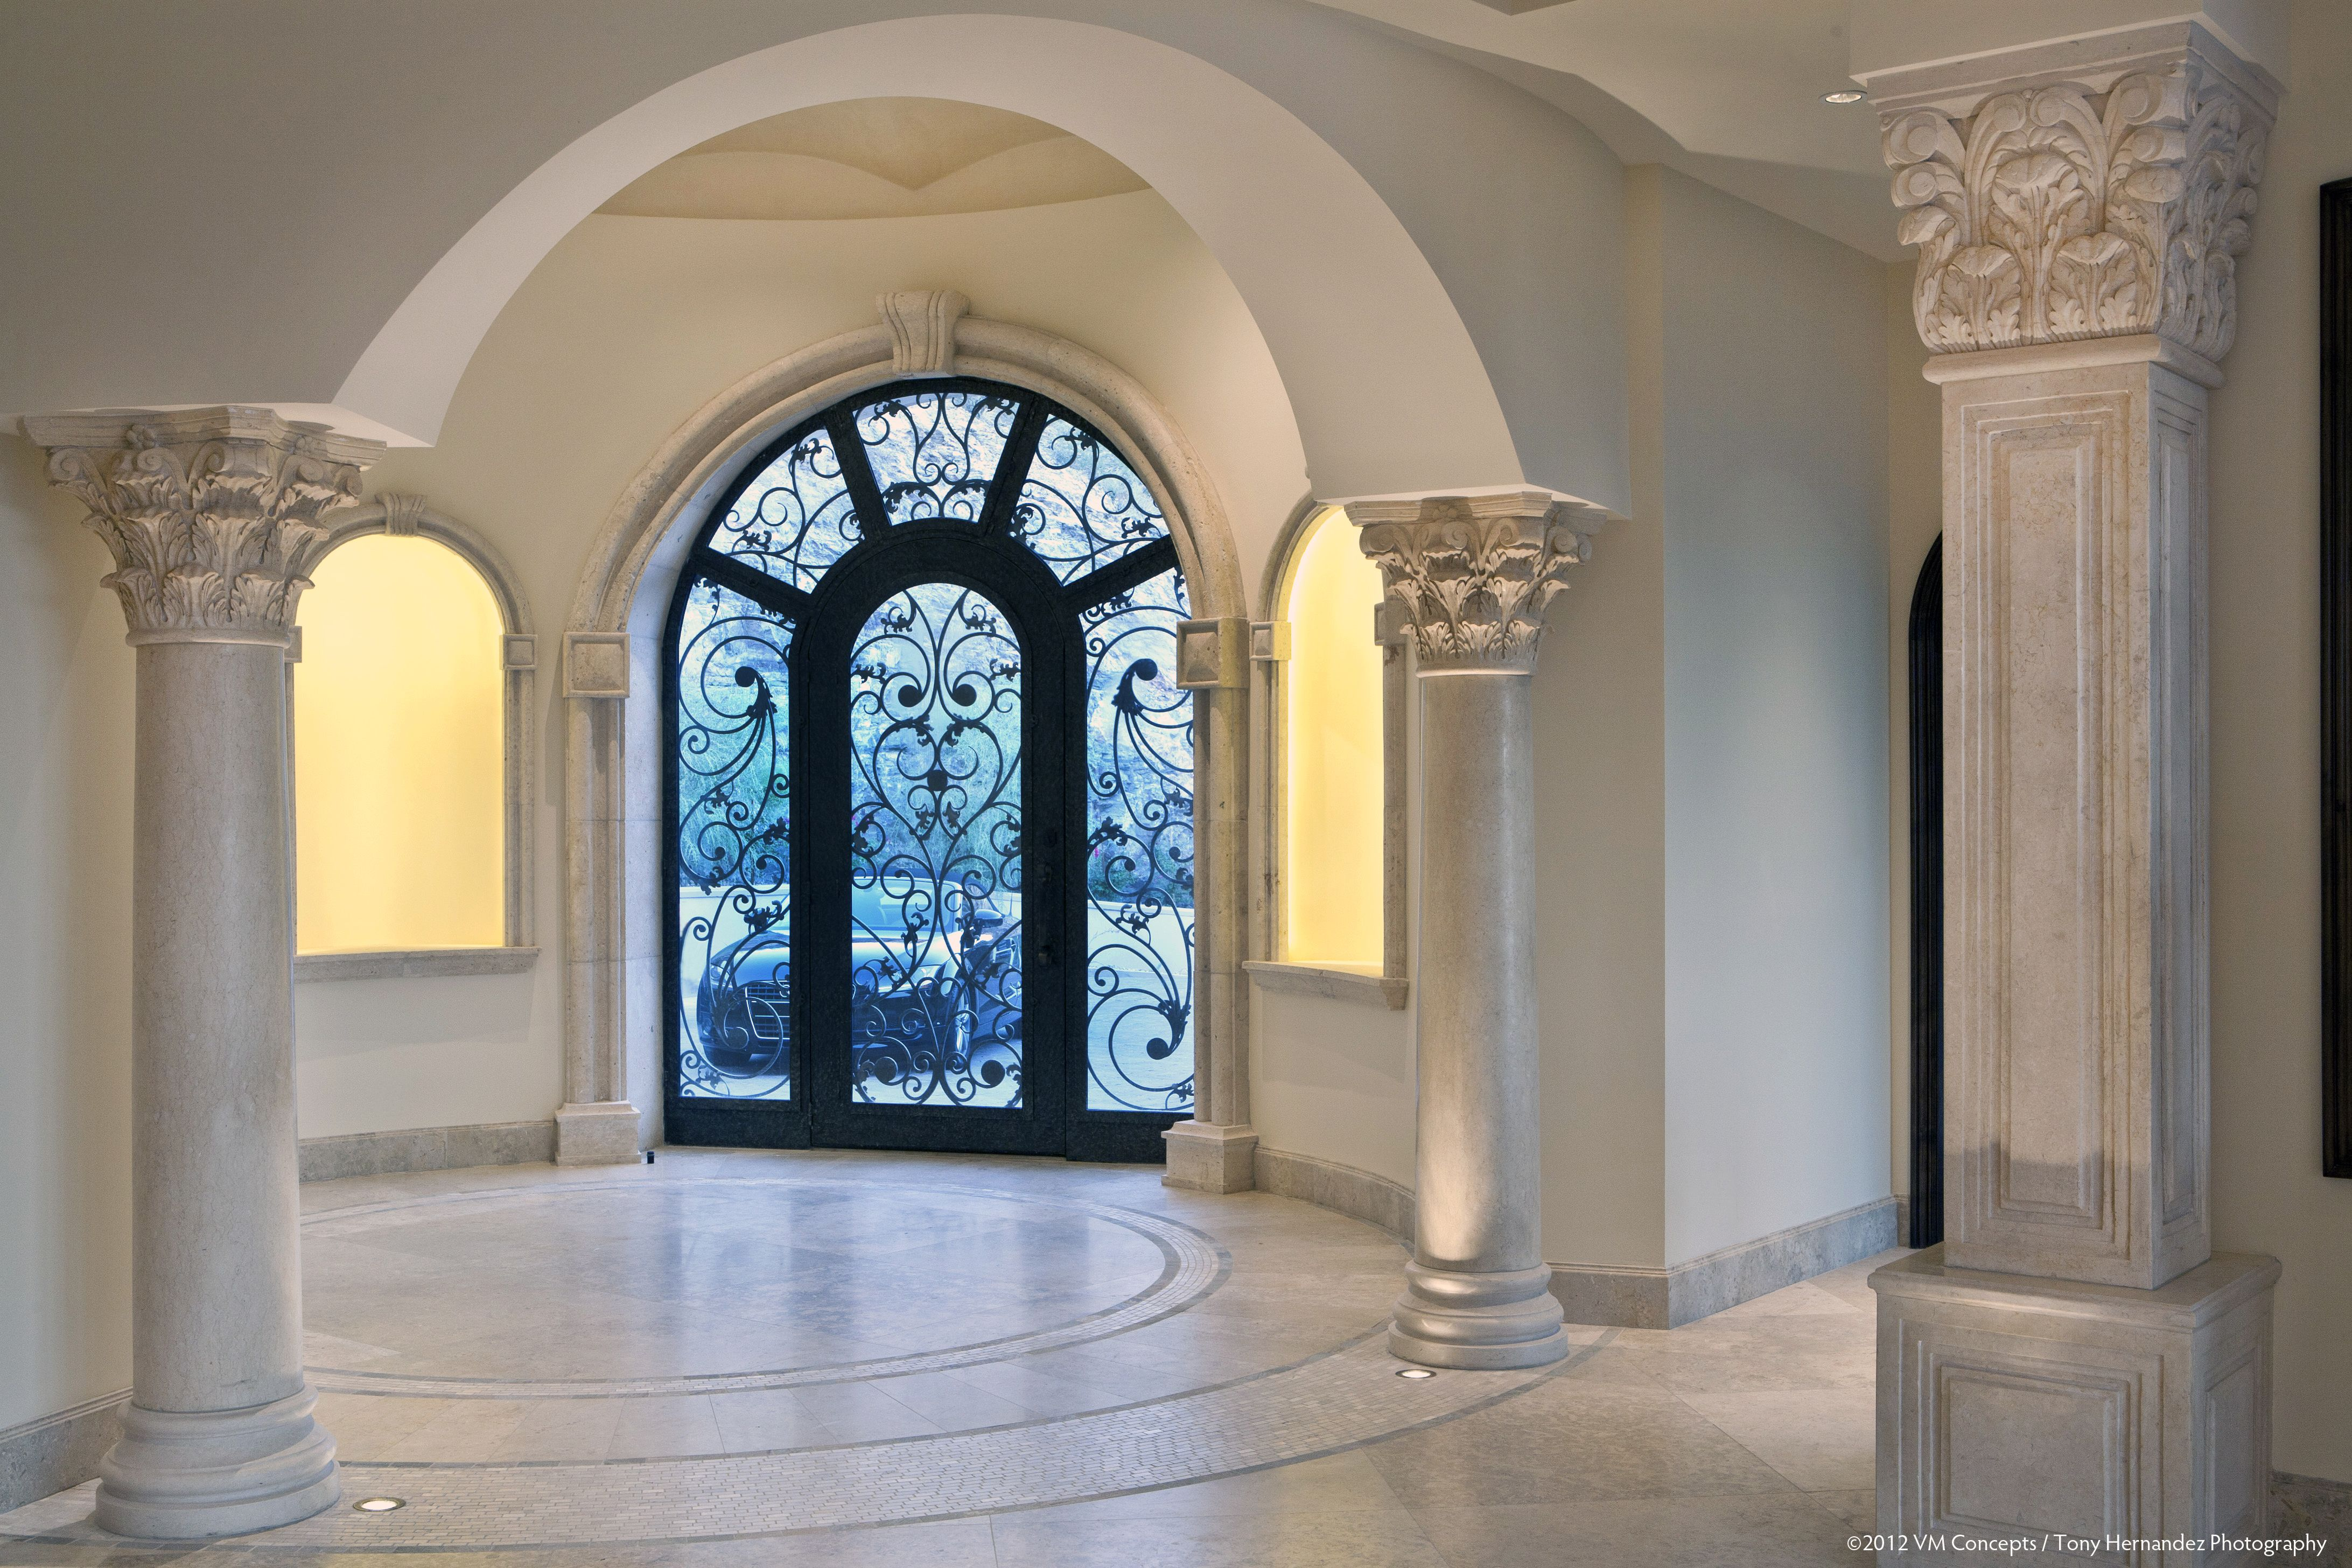 This unique and inviting front entrance to the home in Paradise Valley, AZ sets the tone for the entire European inspired home. Intricate iron work embellishes the door and windows in contrast with the light stone carvings on the interior columns. Designed by VM Concept in Scottsdale, AZ.